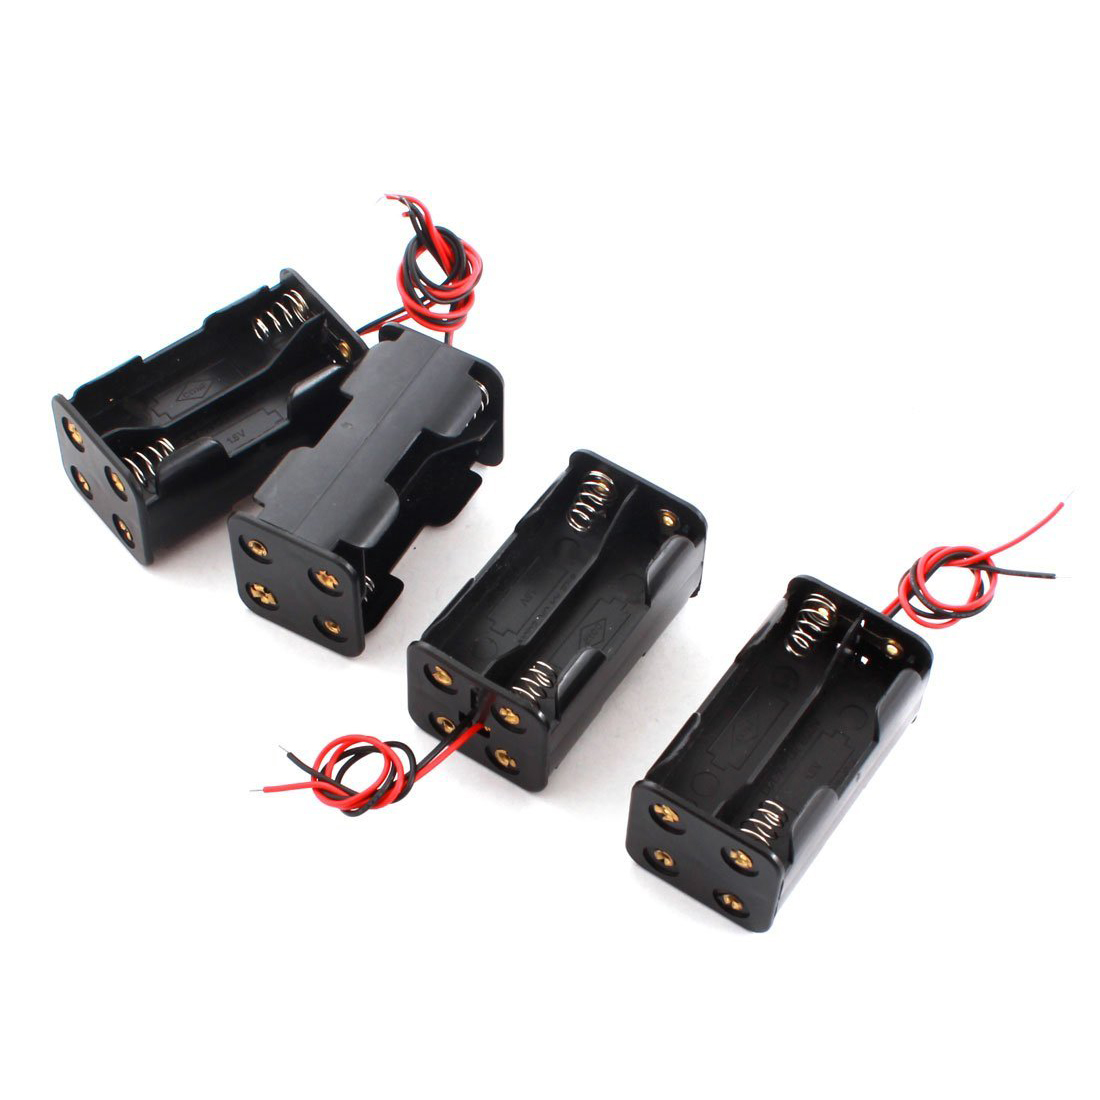 4pcs DIY Double Sides 4 x AA Battery Case Holder Box Container dhl ems 10 50pcs 3 x aa 3xaa 4 5v dc battery holder pp3 case box a1